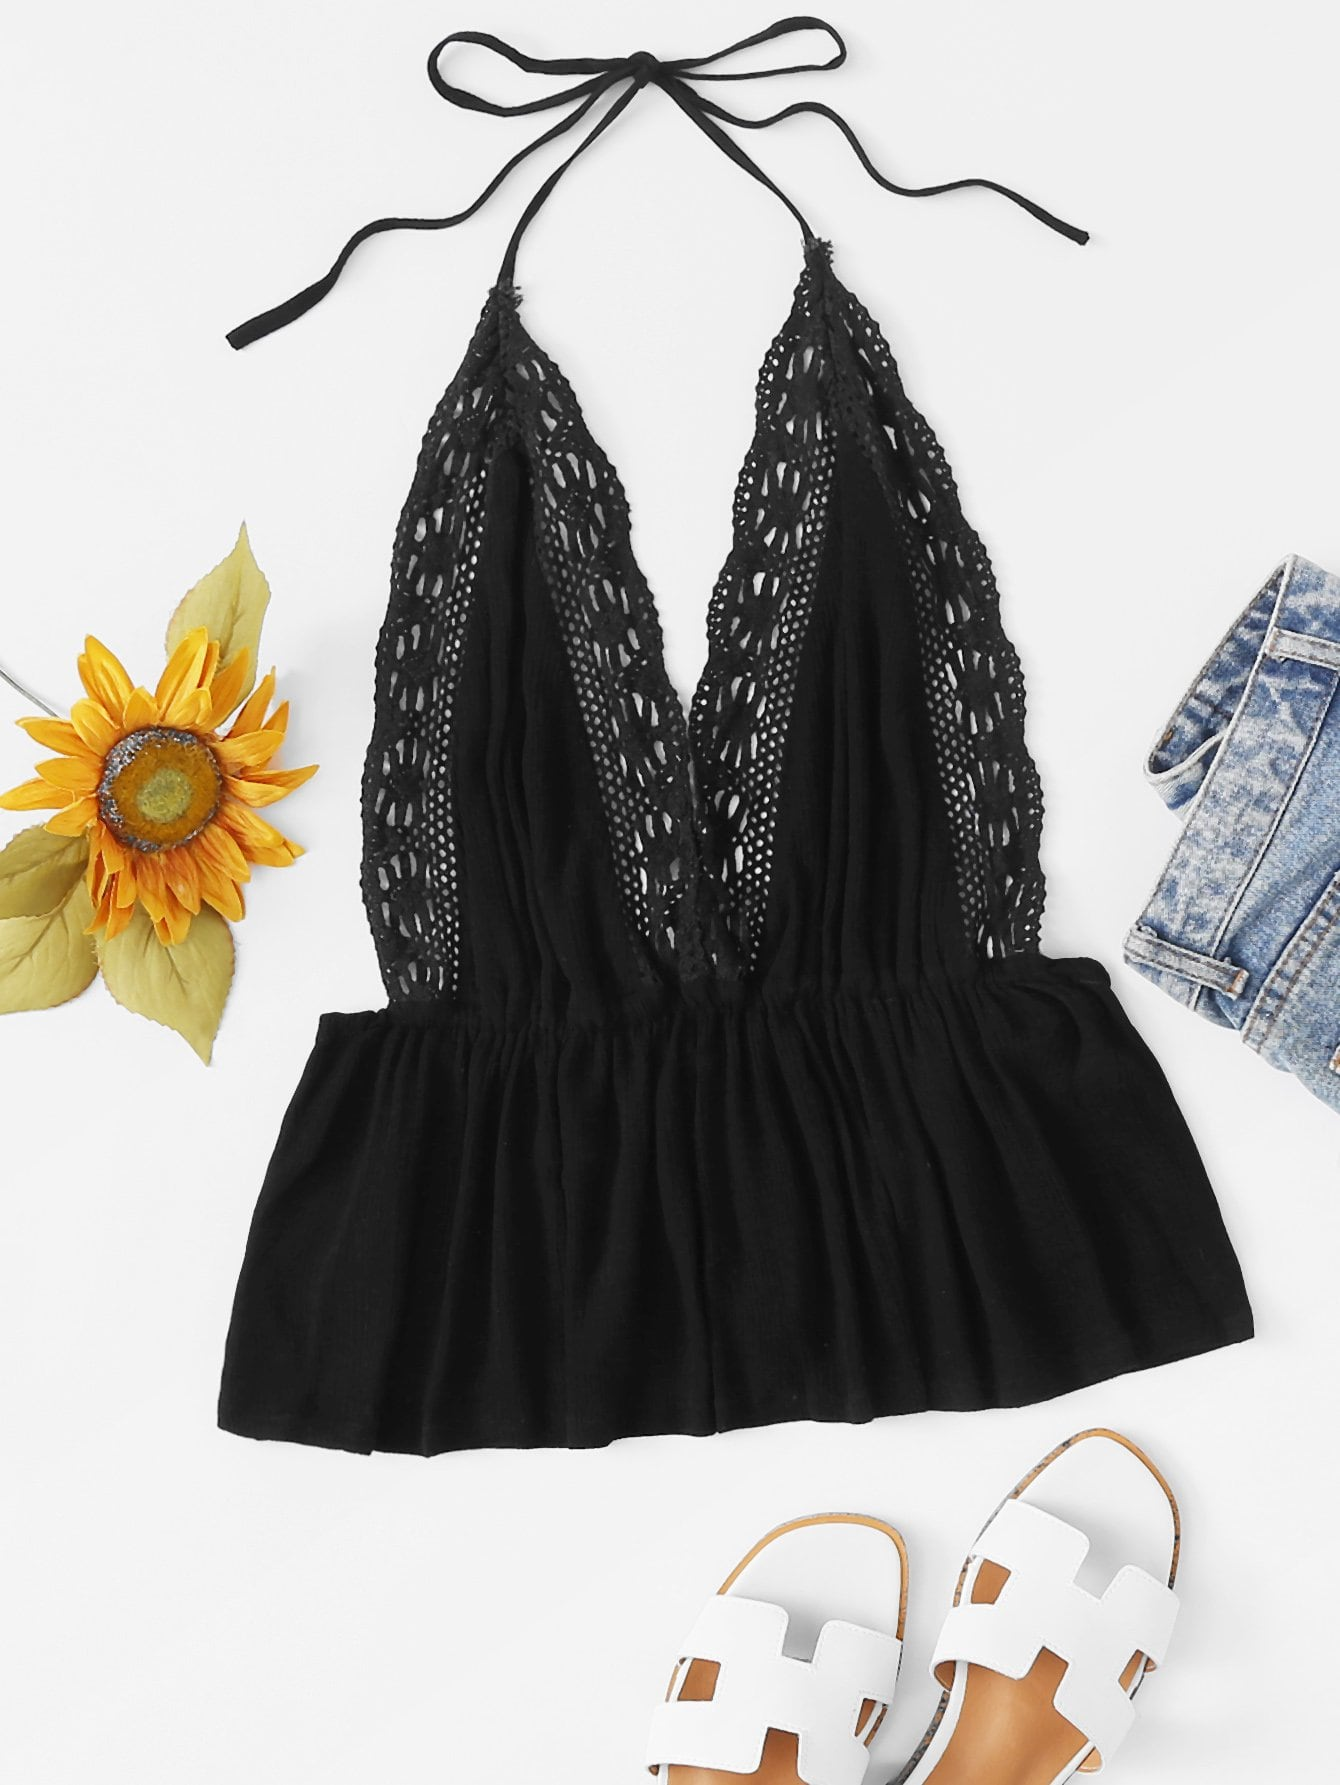 Spaghetti Strap Knot Contrast Lace Top